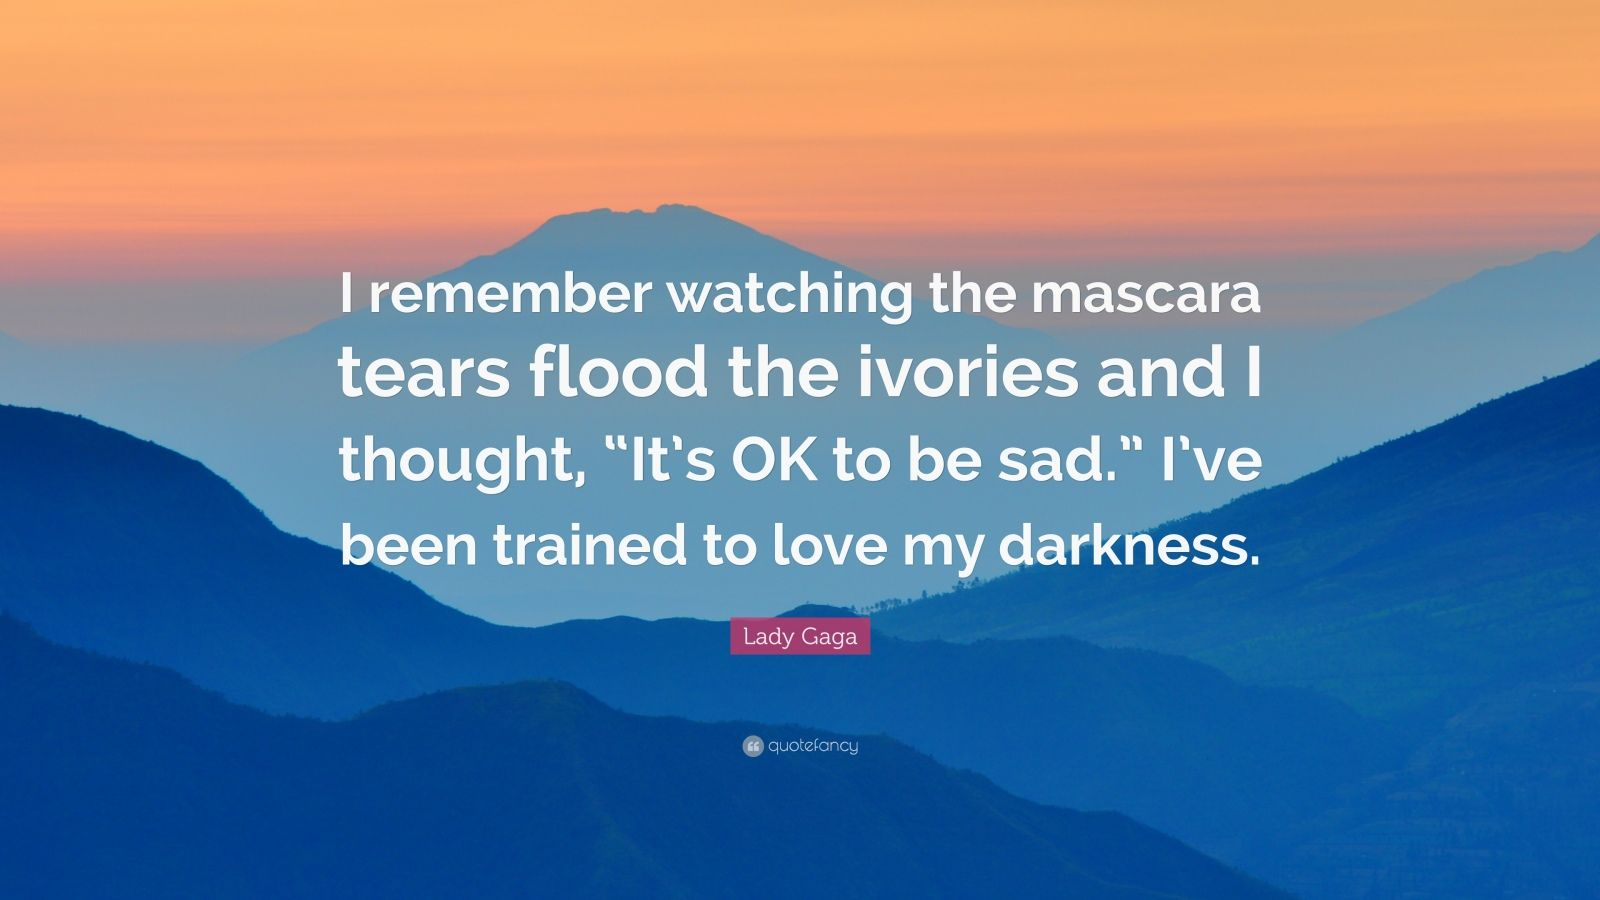 """Lady Gaga Quote: """"I remember watching the mascara tears flood the ivories and I thought, """"It's OK to be sad."""" I've been trained to love my darkness."""""""